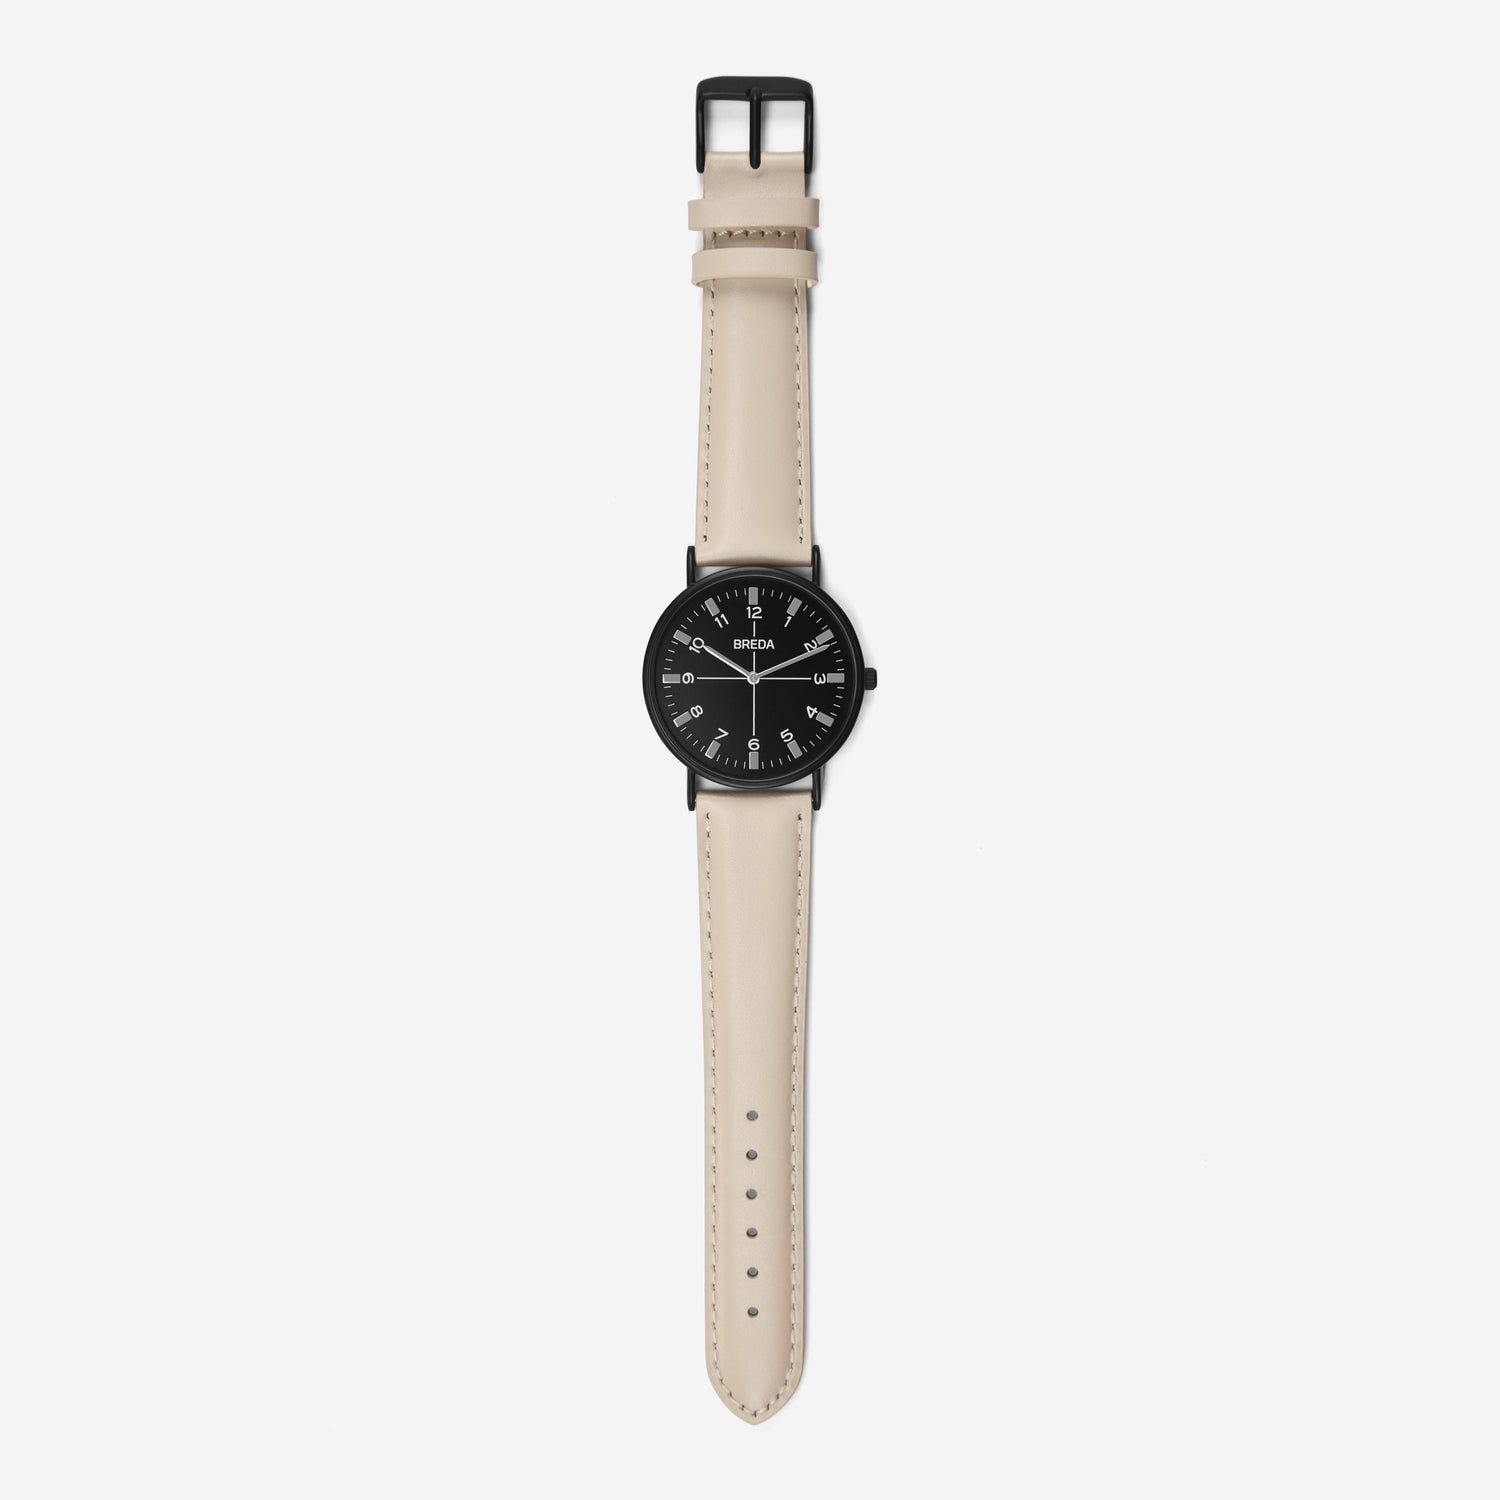 BREDA-Belmont-1646k-Black-Beige-Watch-Long